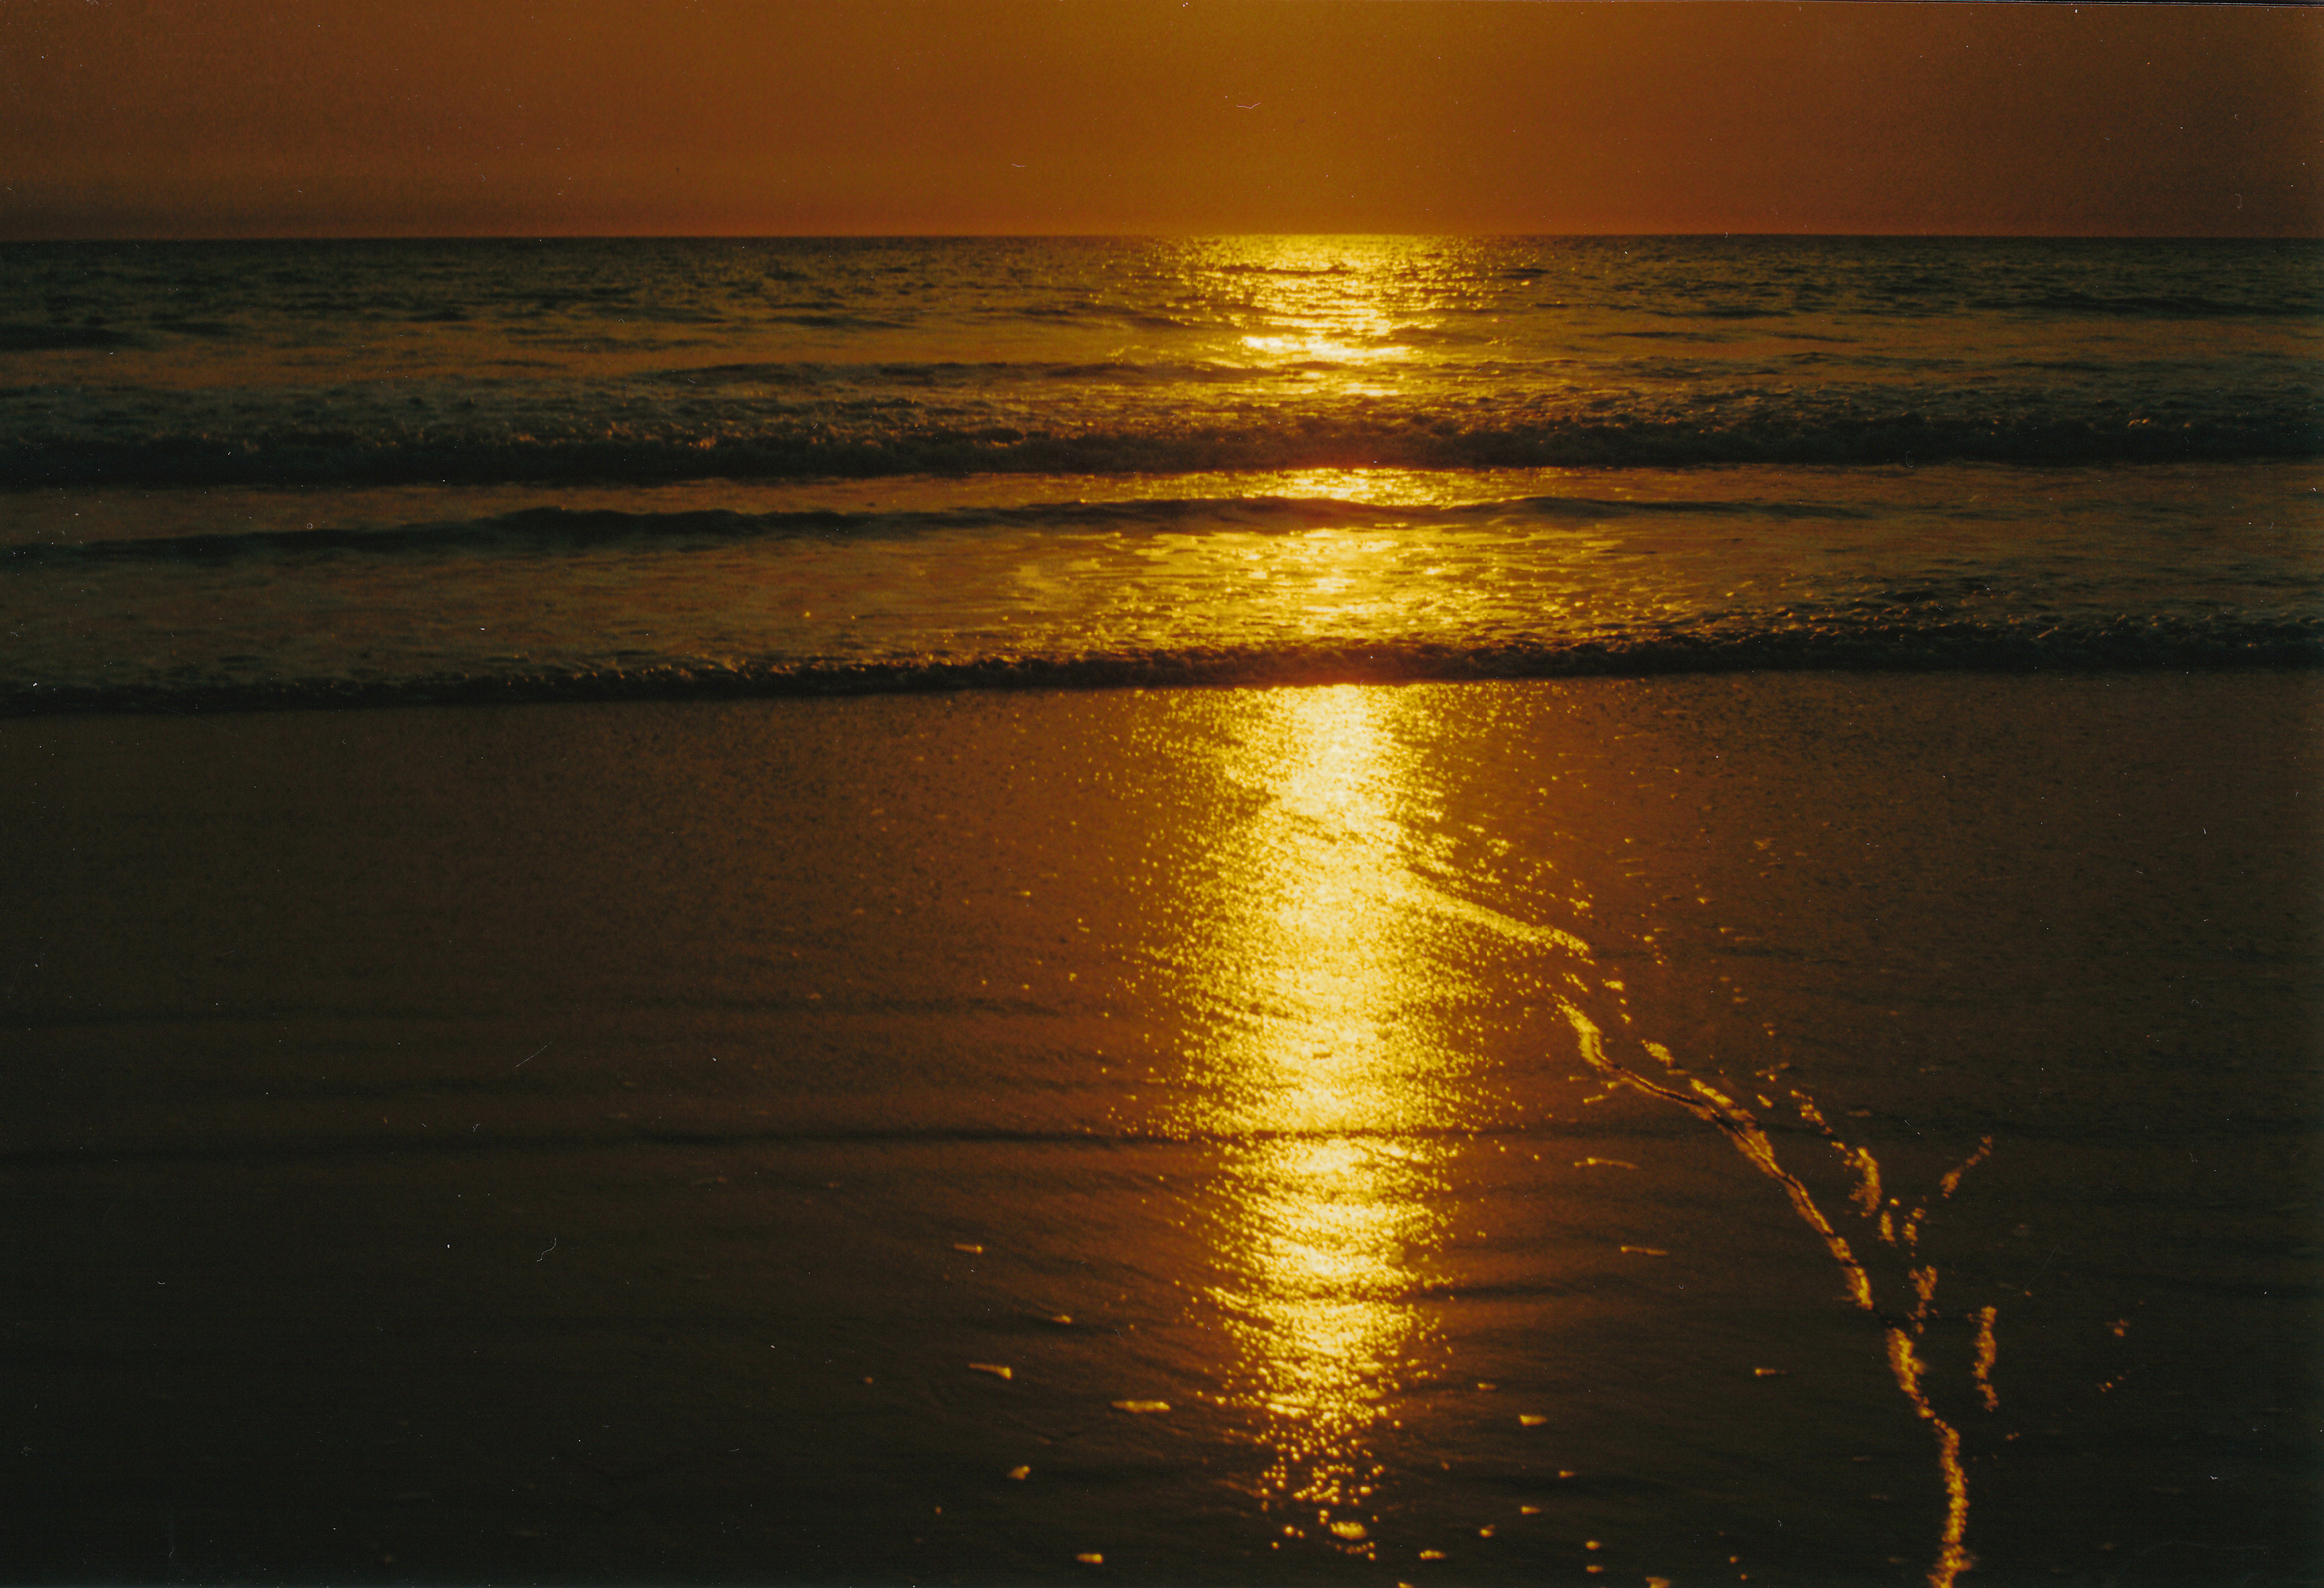 08-27-2000 sunset cable beach with ripple.jpg